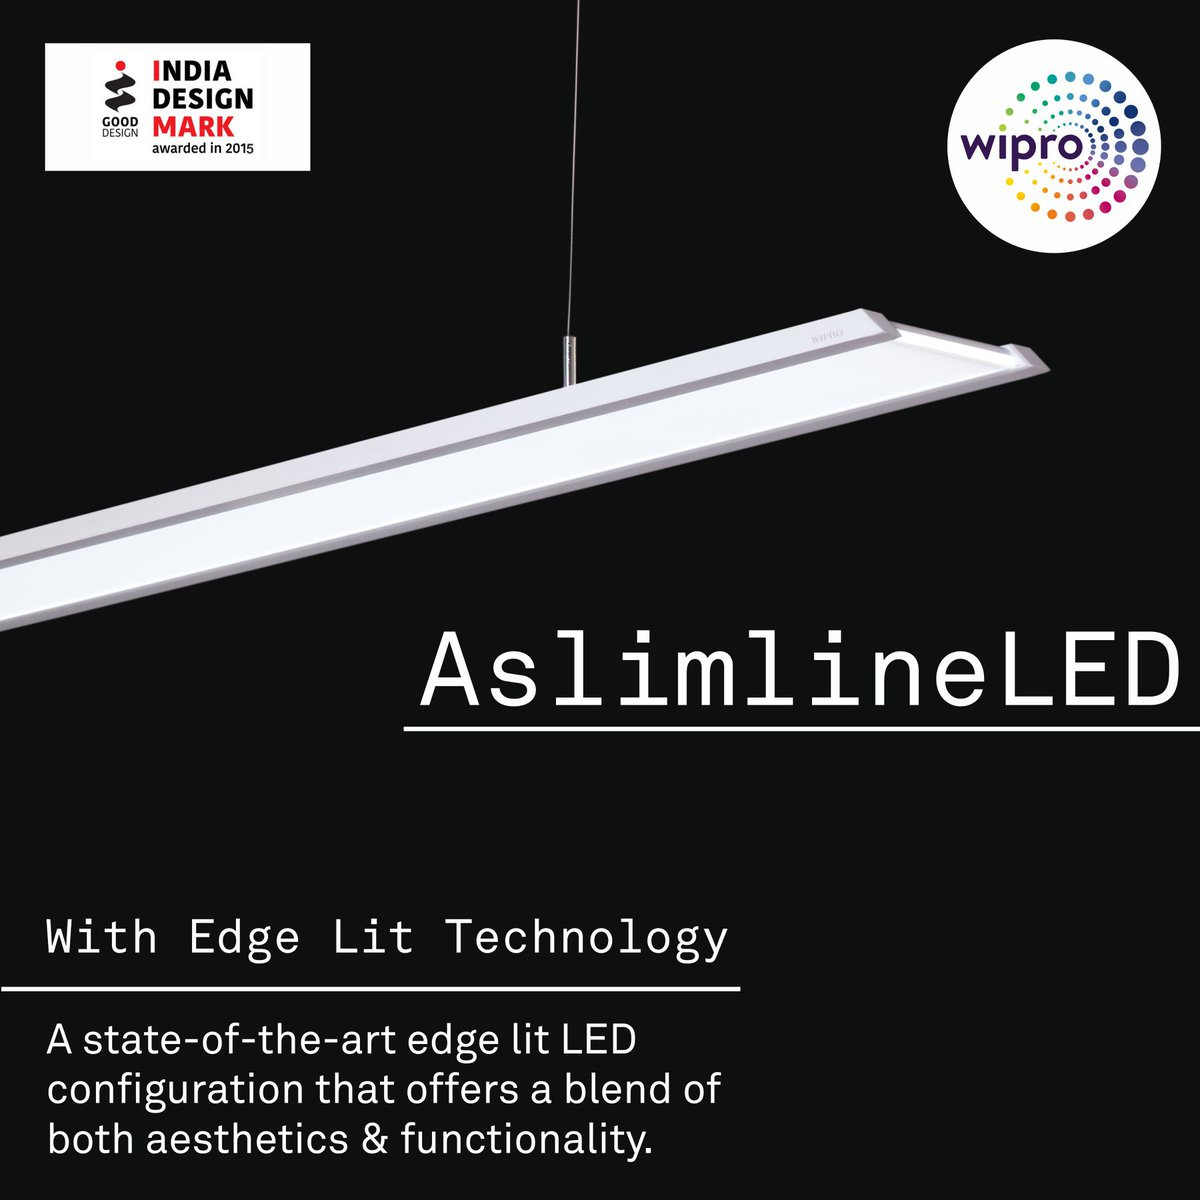 Wipro Lighting On Twitter AslimlineLED With Our Stateoftheart - Lit design 2015